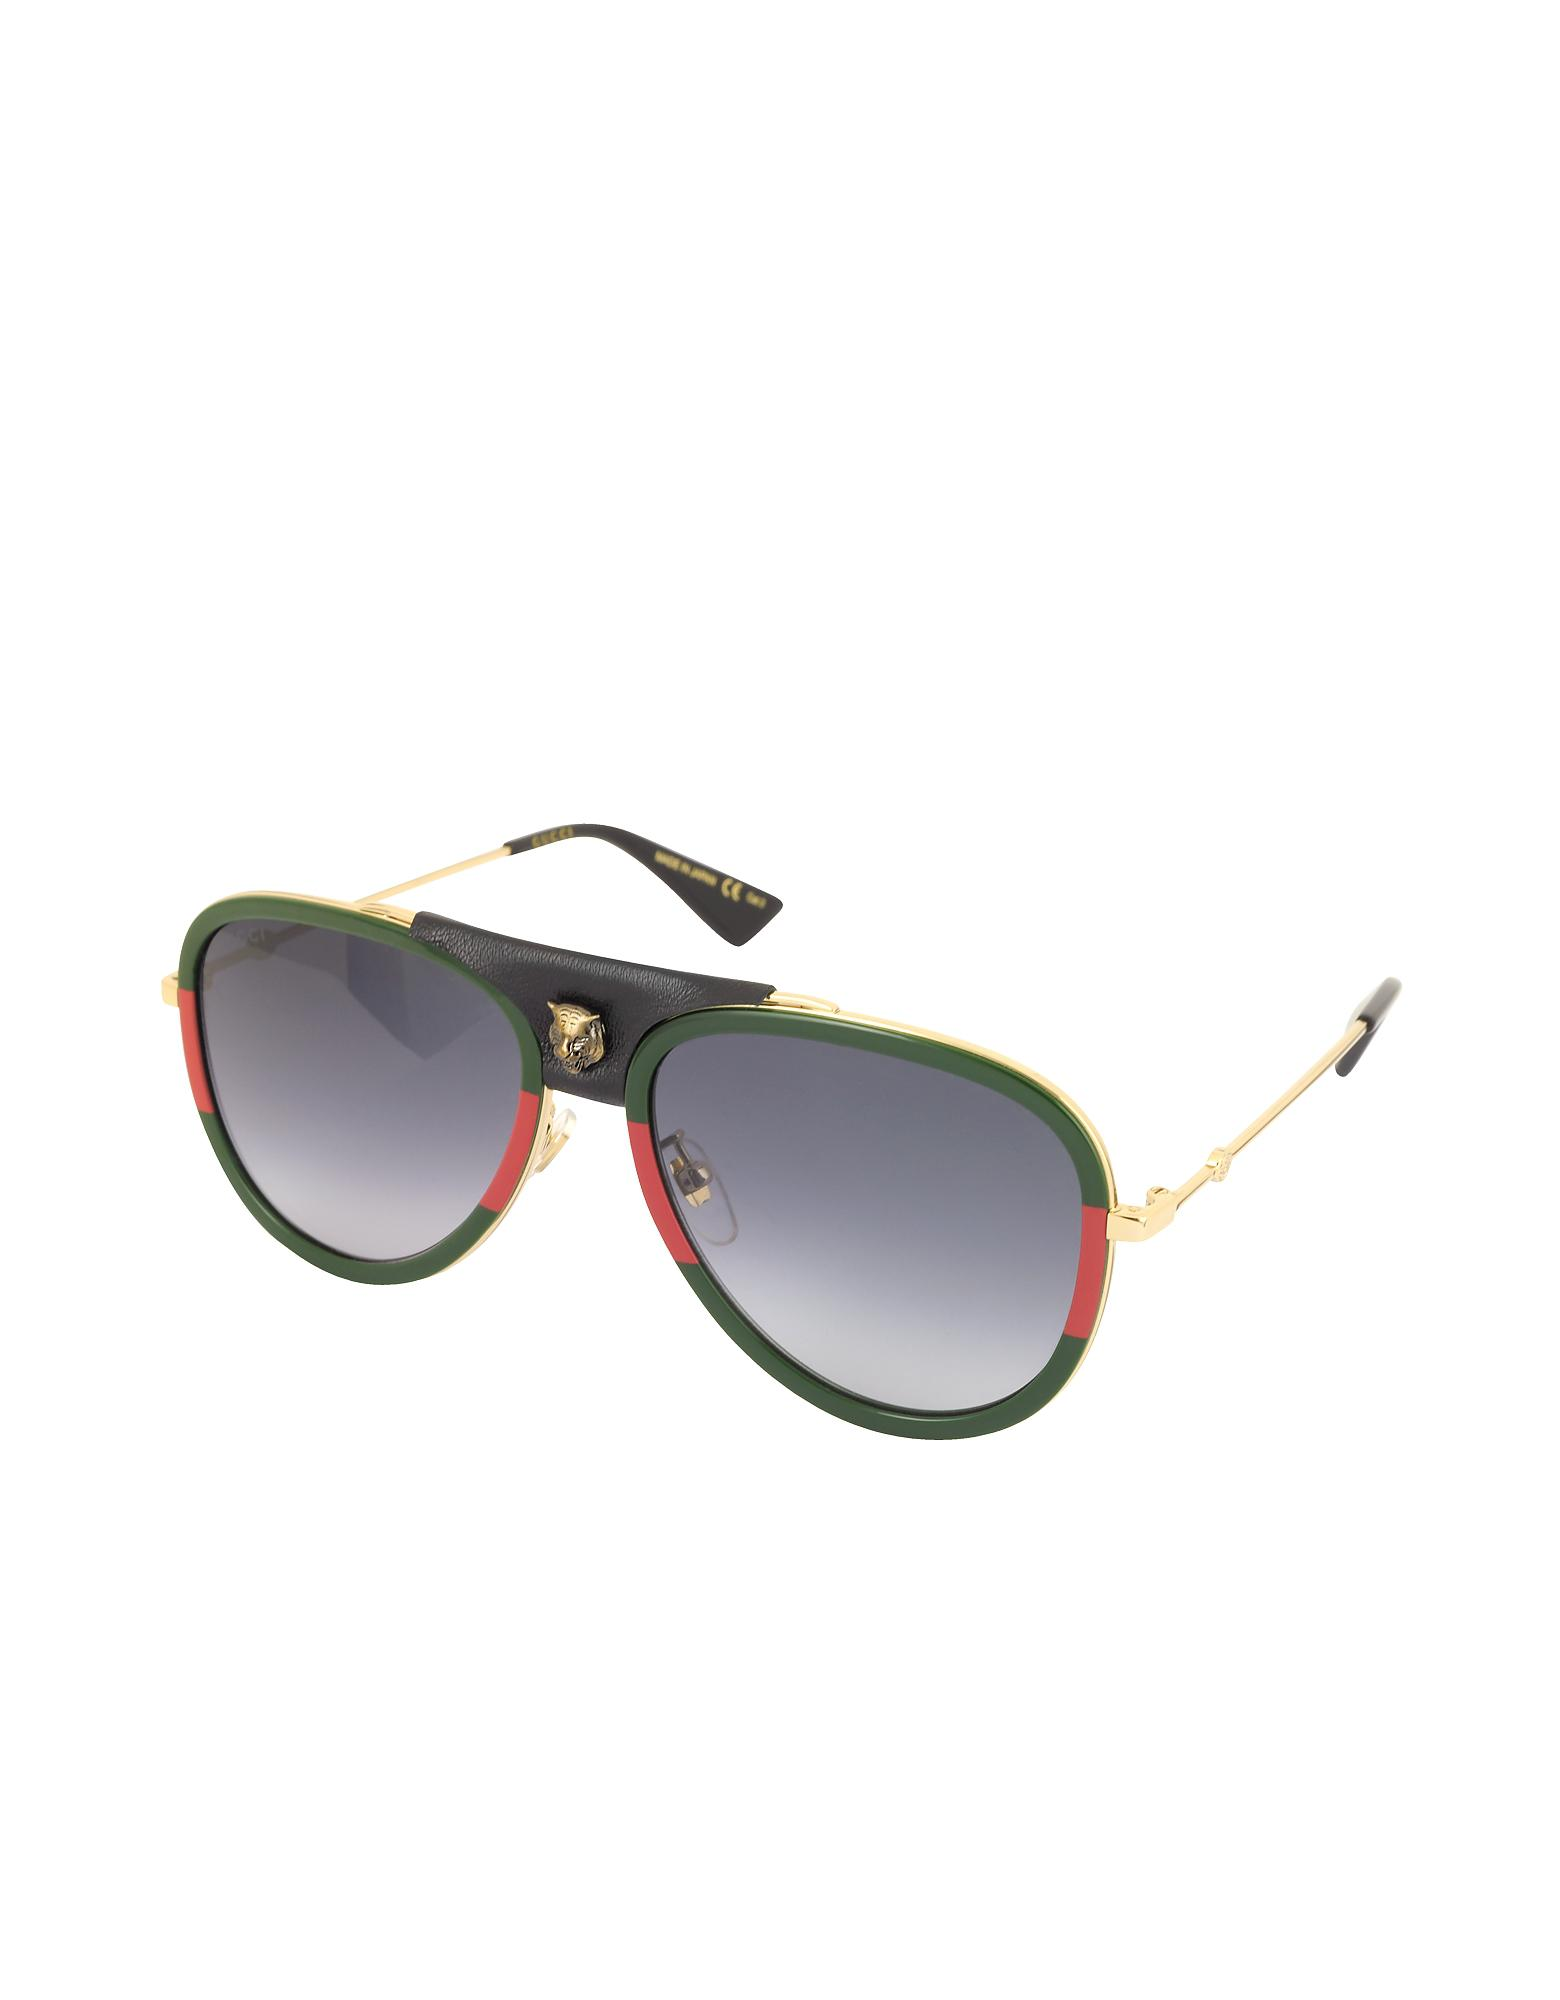 Lyst - Gucci GG0062S Aviator Gold Metal And Black Leather Sunglasses in  Metallic for Men 7b7d674a42